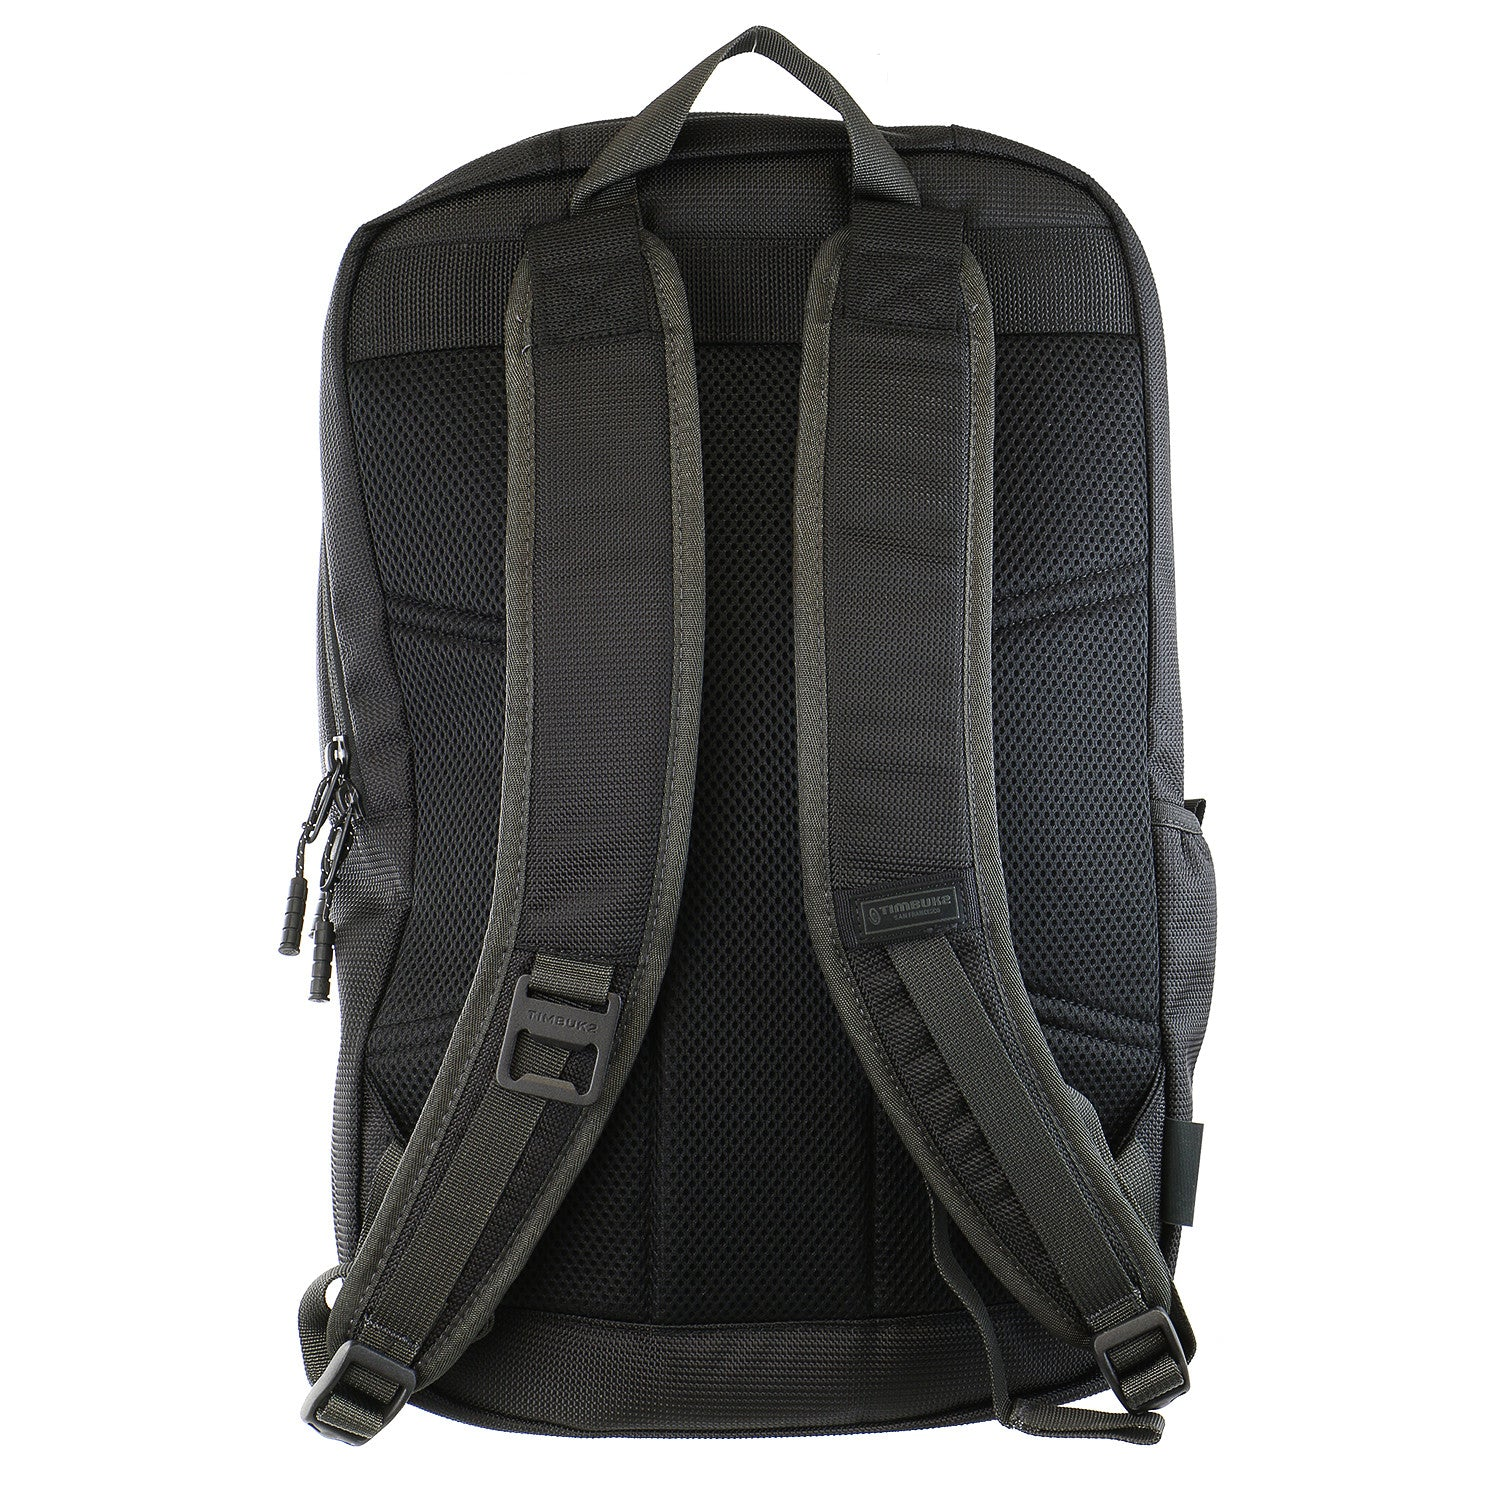 d372b177a Timbuk2 Parkside Laptop Backpack - Shoplifestyle